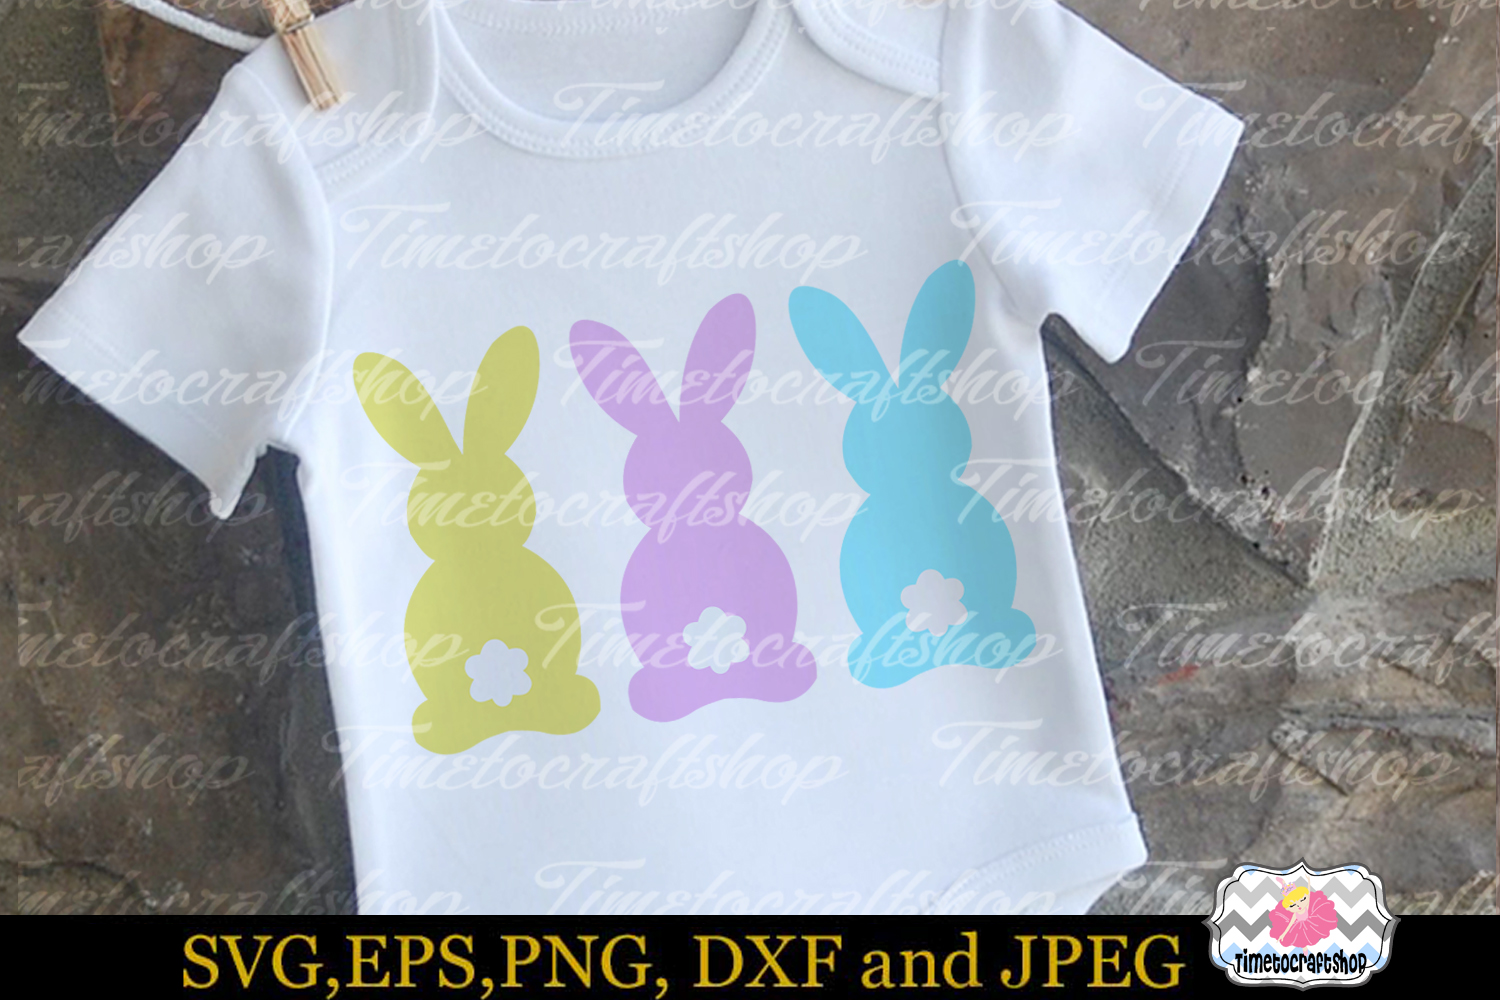 SVG, Eps, Dxf & Png Cutting Files For Easter Bunny example image 2